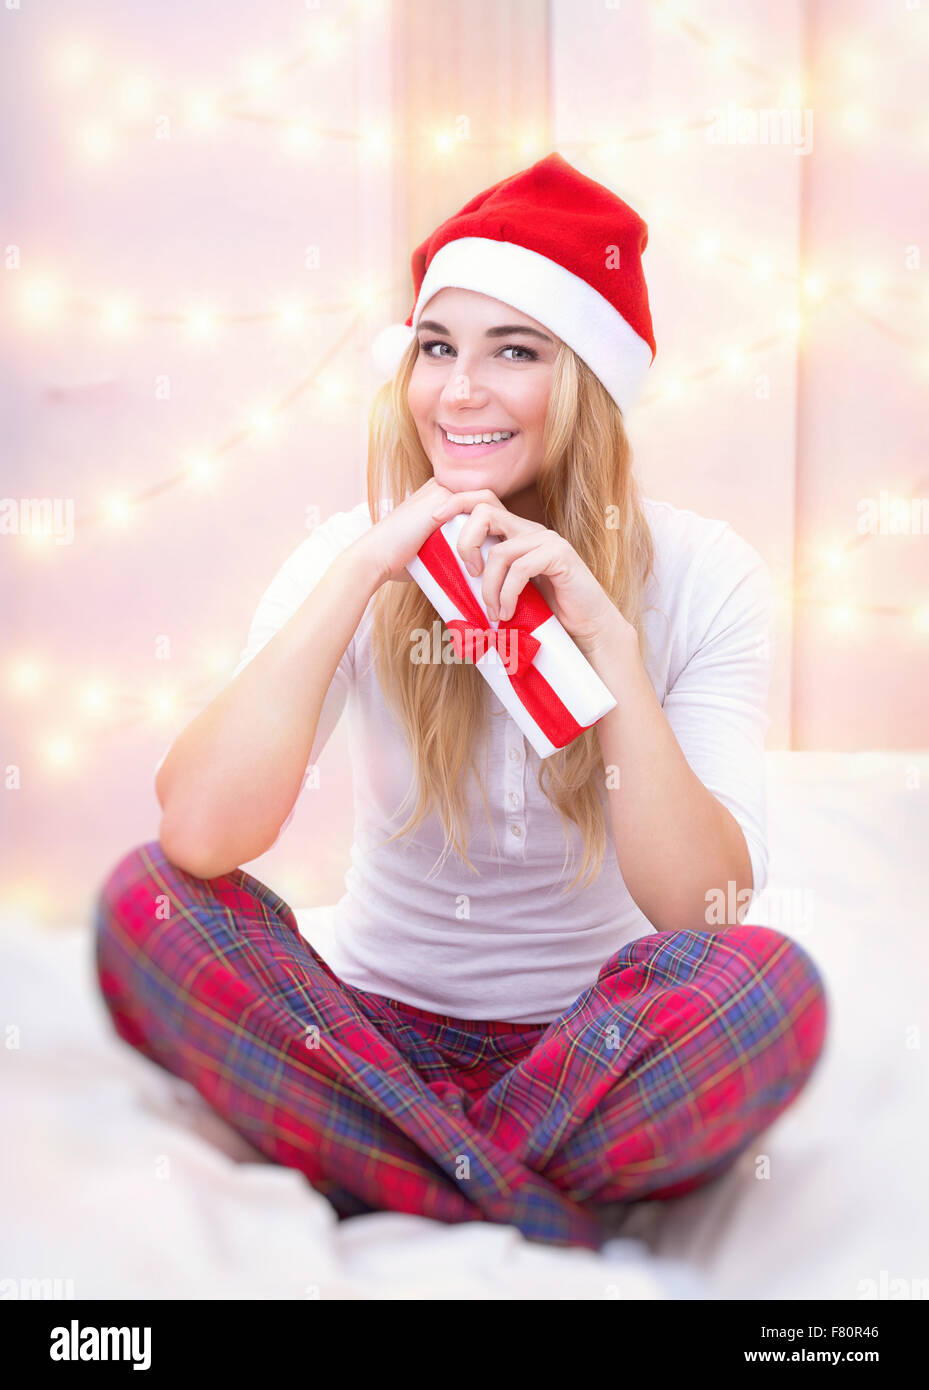 dcd33c096fe657 Cheerful woman with Christmas gift sitting on the bed at home on festive  lights background,